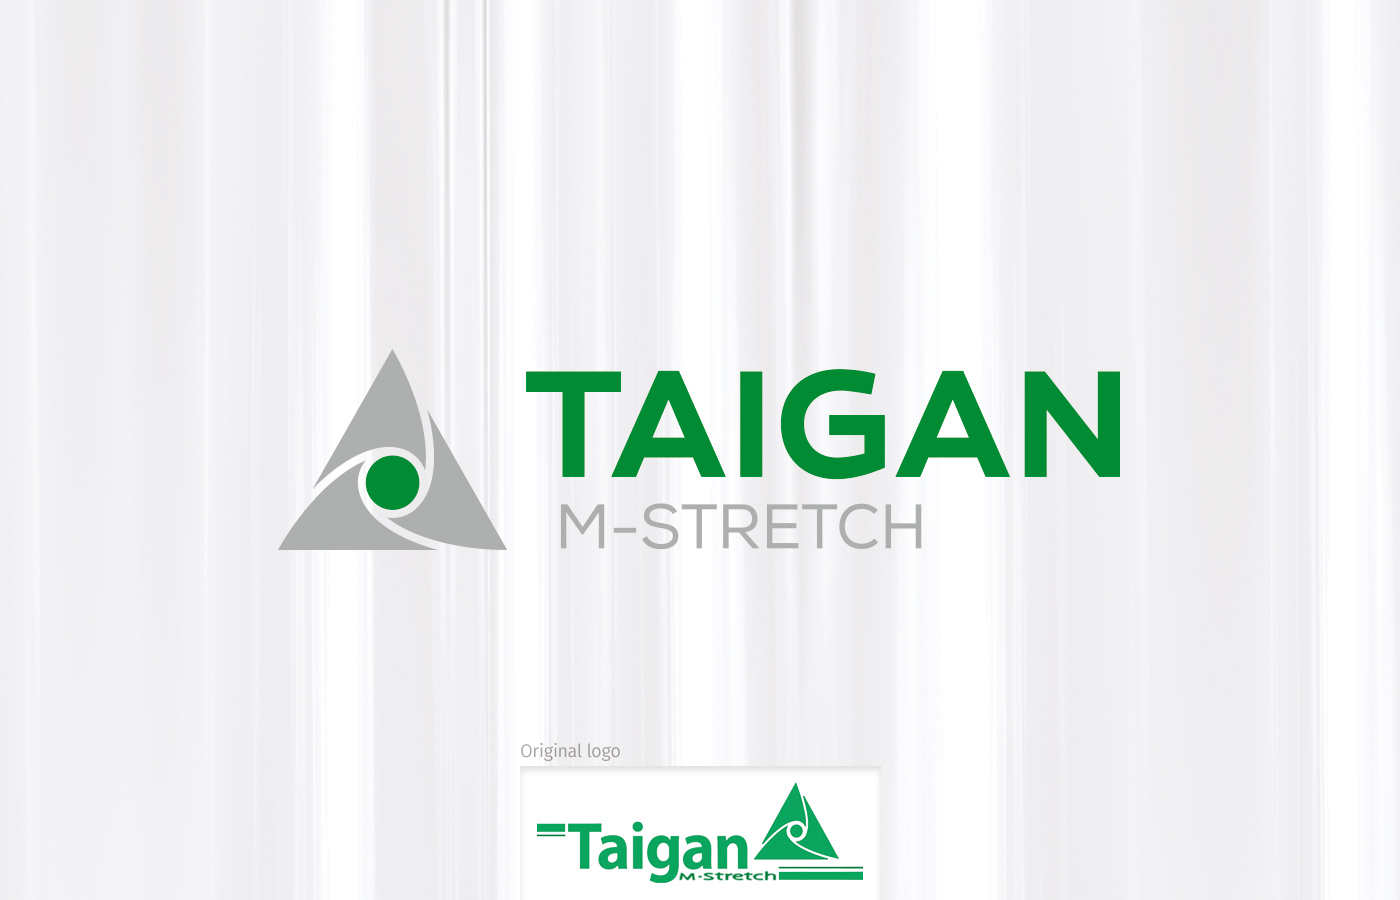 Taigan M-Stretch Logo Redesign and Brand Refresh